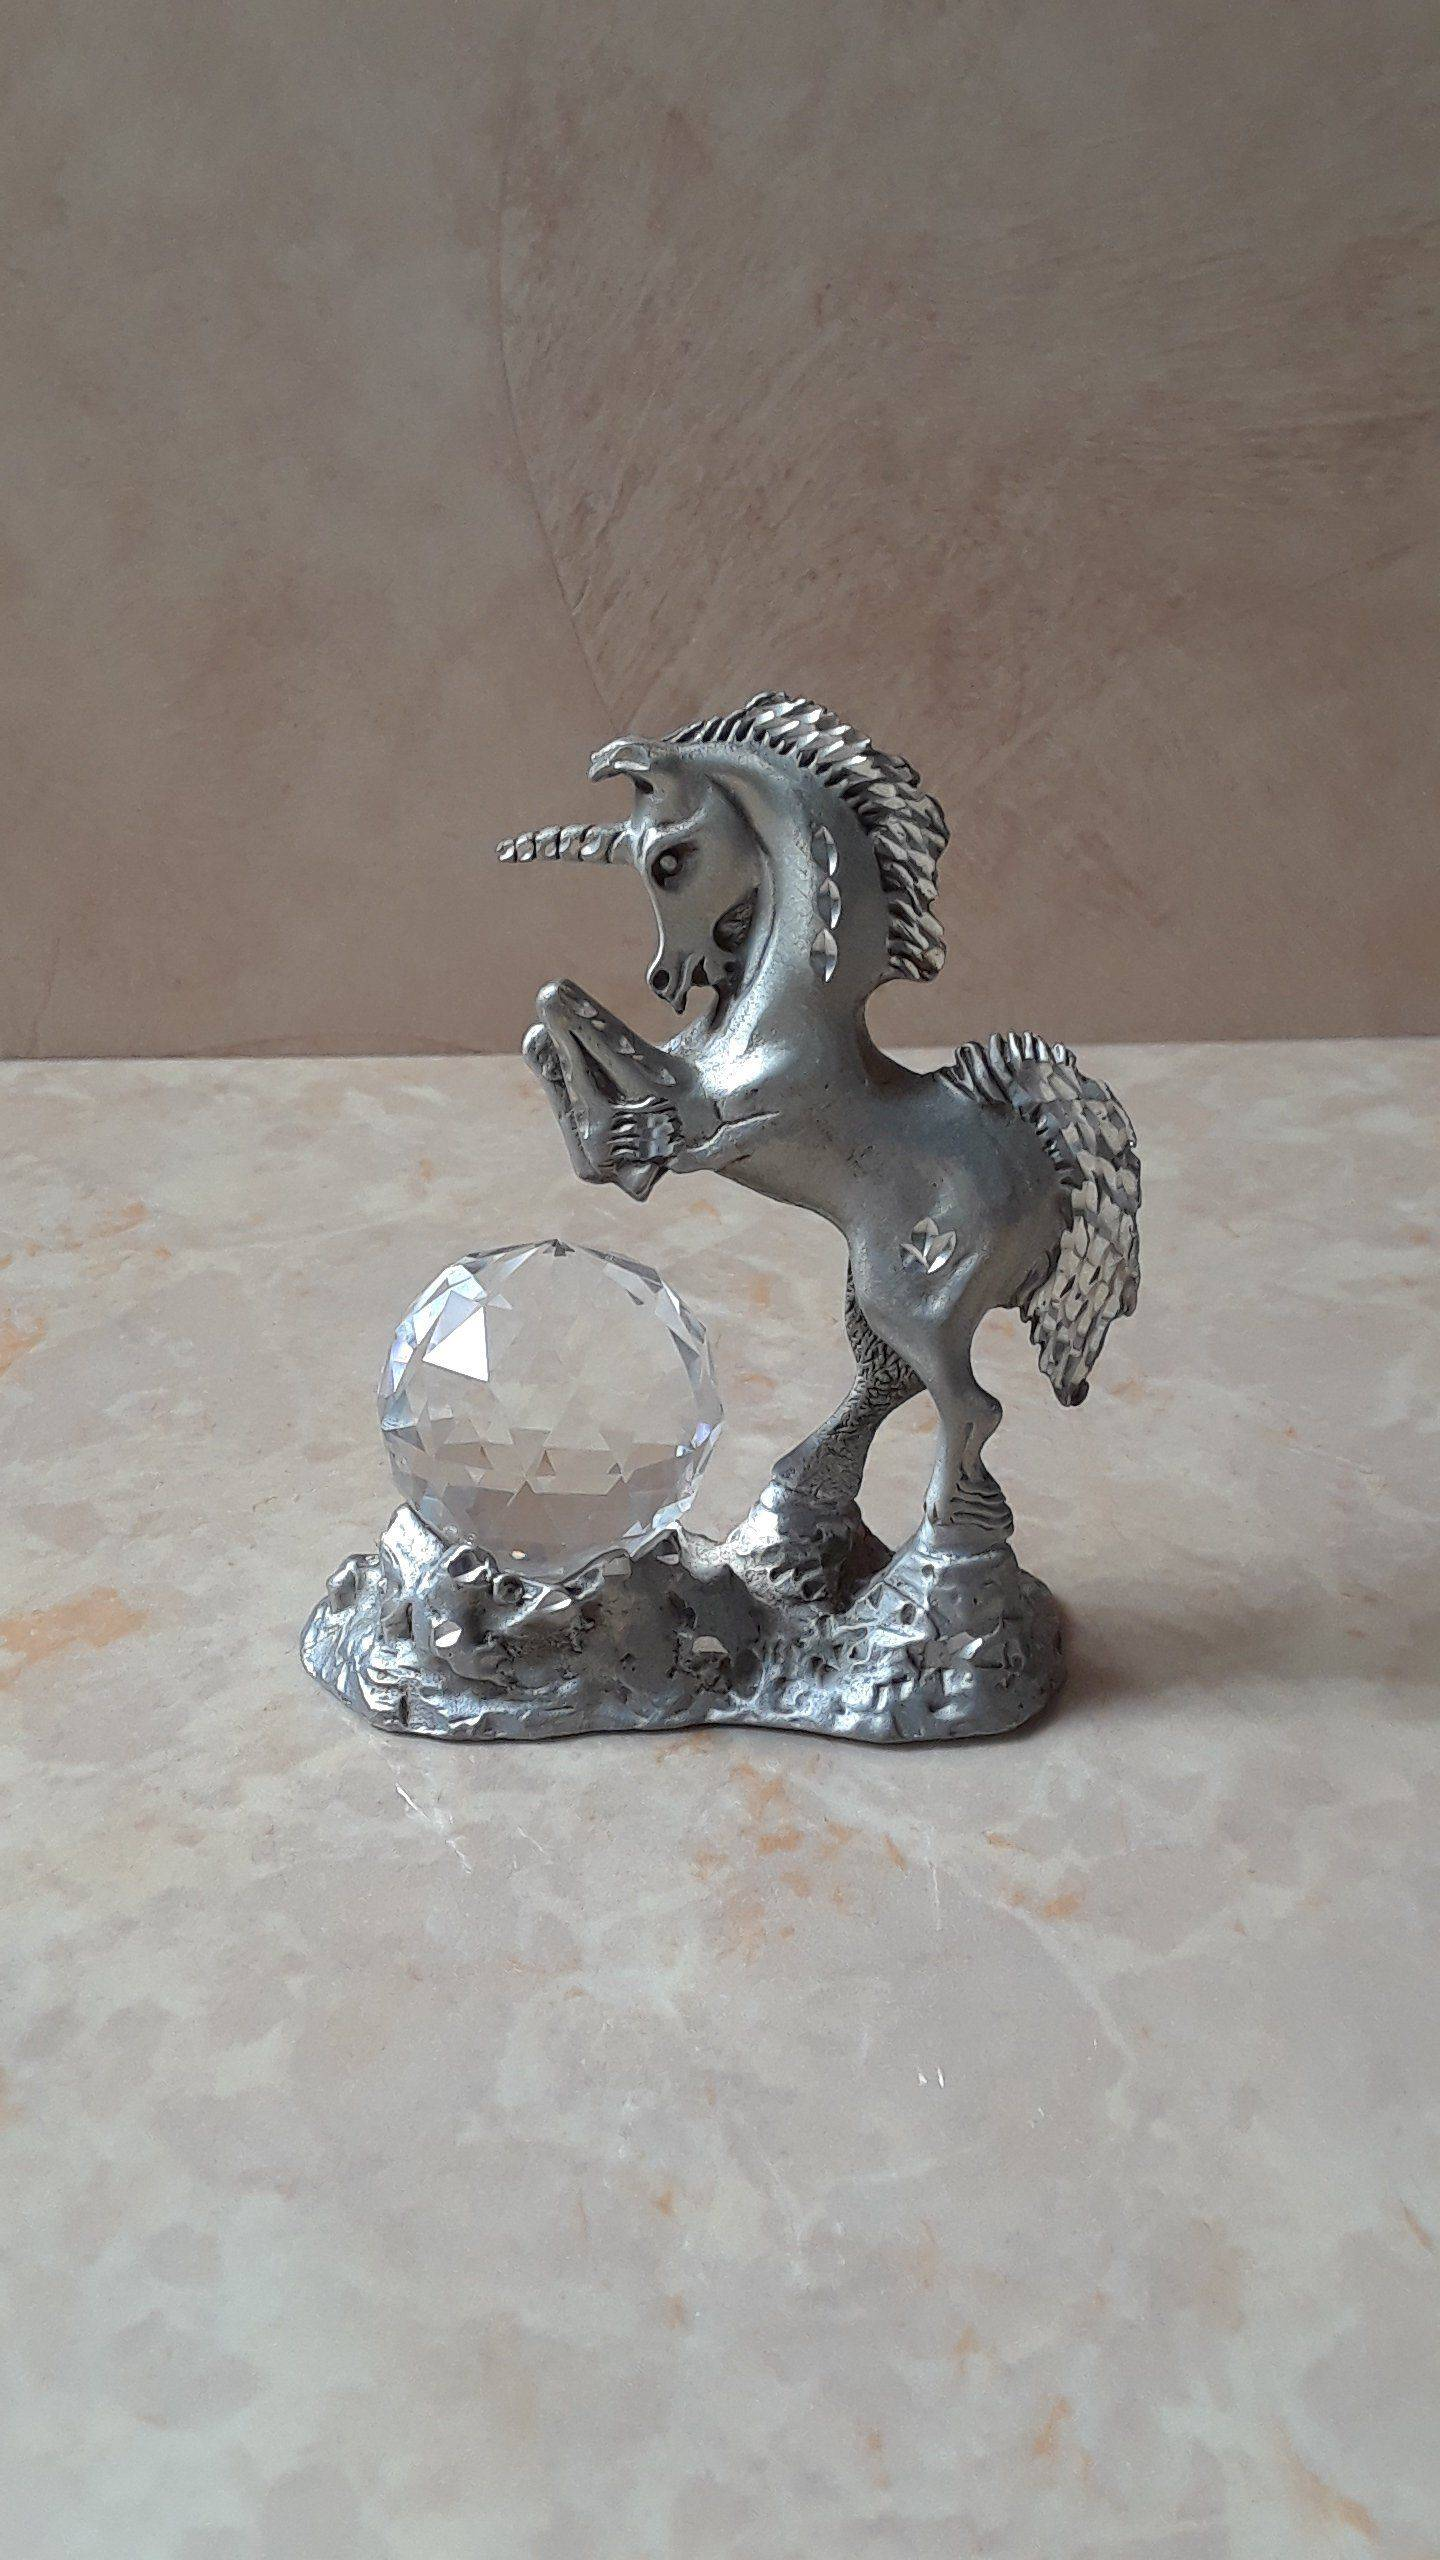 Threadhouse Curtains Beautiful Vintage Cuter Pewter Unicorn Figurine with Crystal Ball